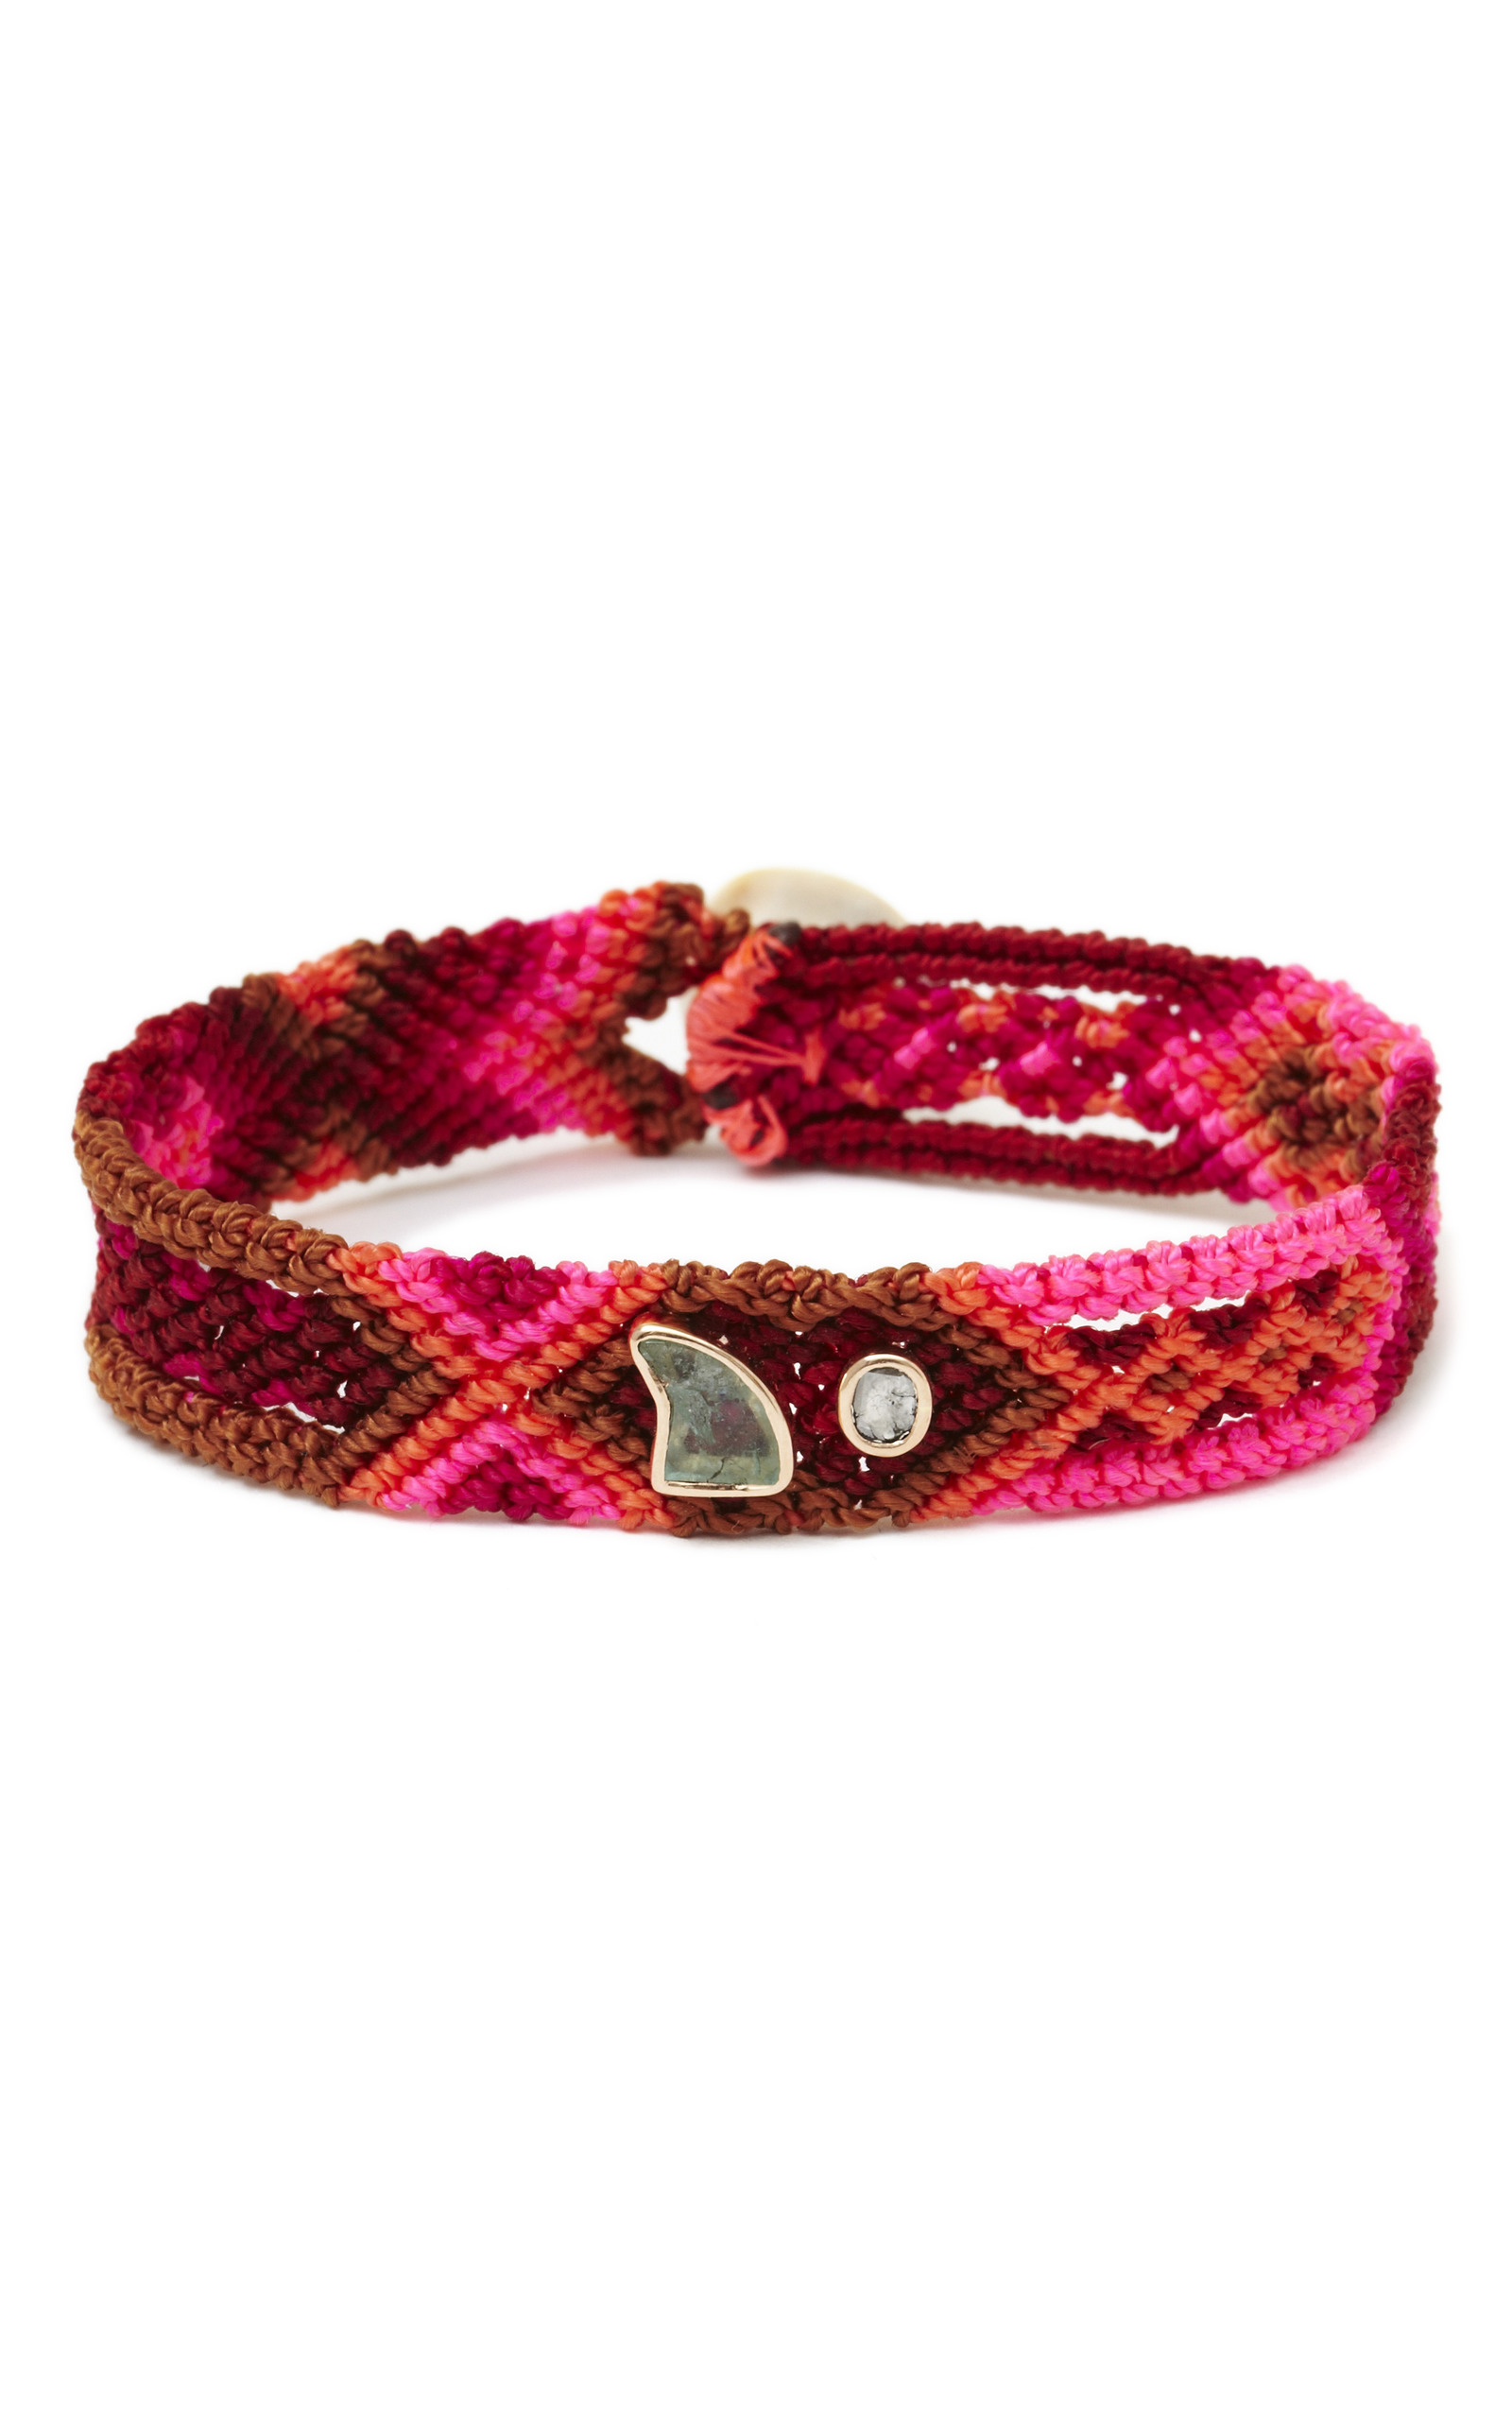 moonstone product jewelry hand gallery dezso by in sara pink woven handwoven lyst bracelet beltran